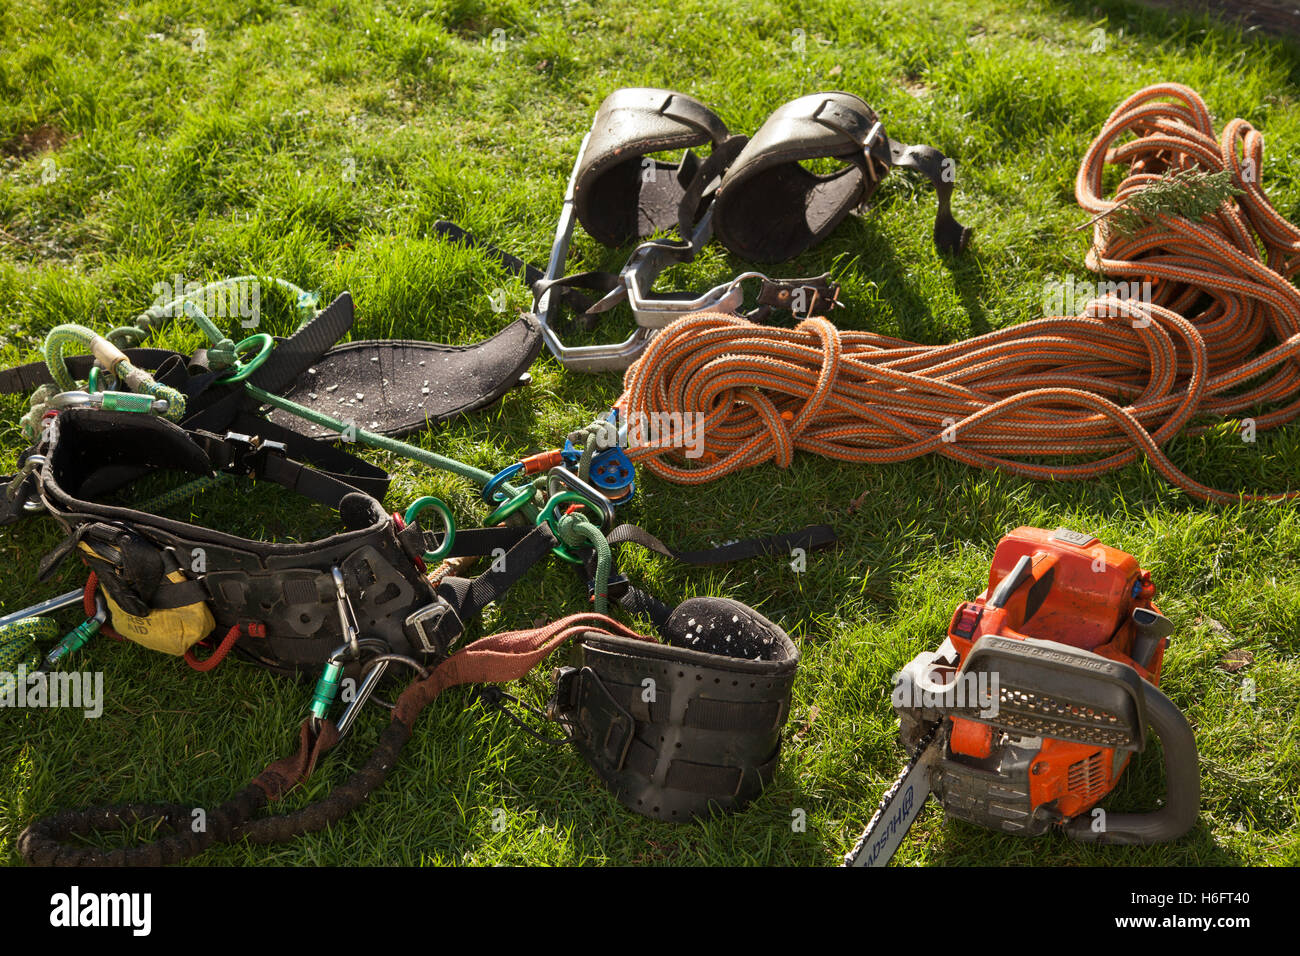 Tree surgeons equipment, climbing harness, rope, chainsaw, protection, tackle - Stock Image